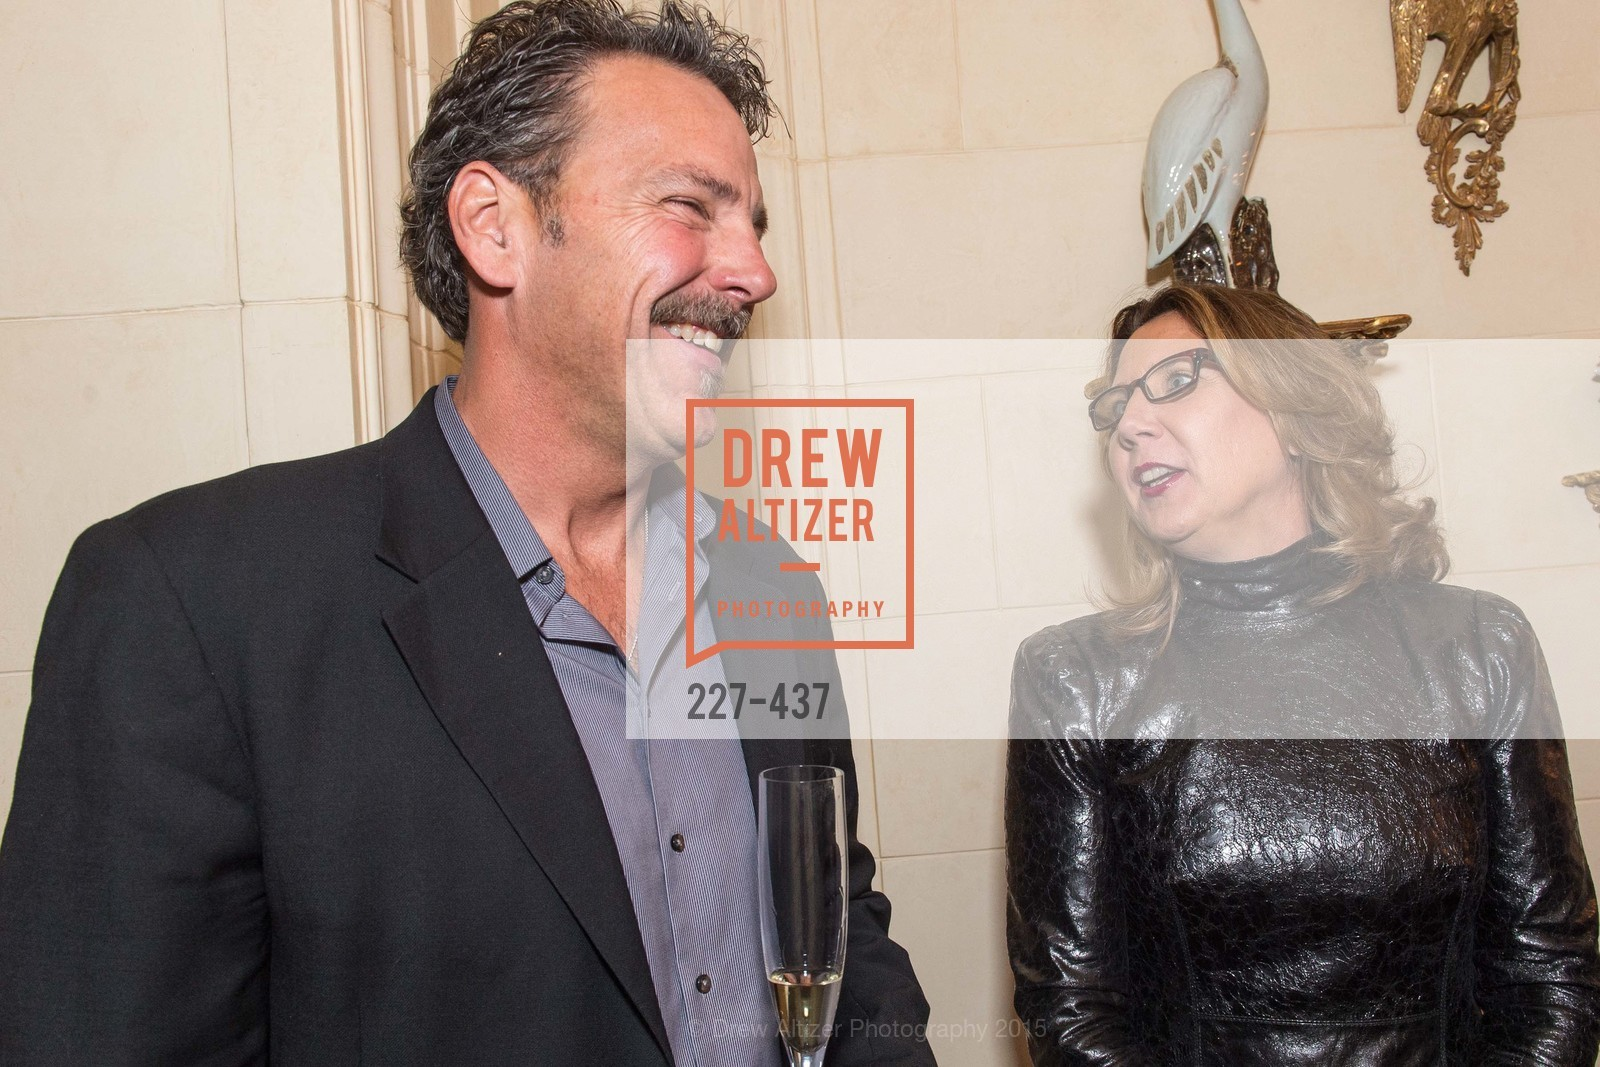 Gina Gallo, FDS Vintner Reception and Dinner, Private Residence, November 4th, 2015,Drew Altizer, Drew Altizer Photography, full-service agency, private events, San Francisco photographer, photographer california